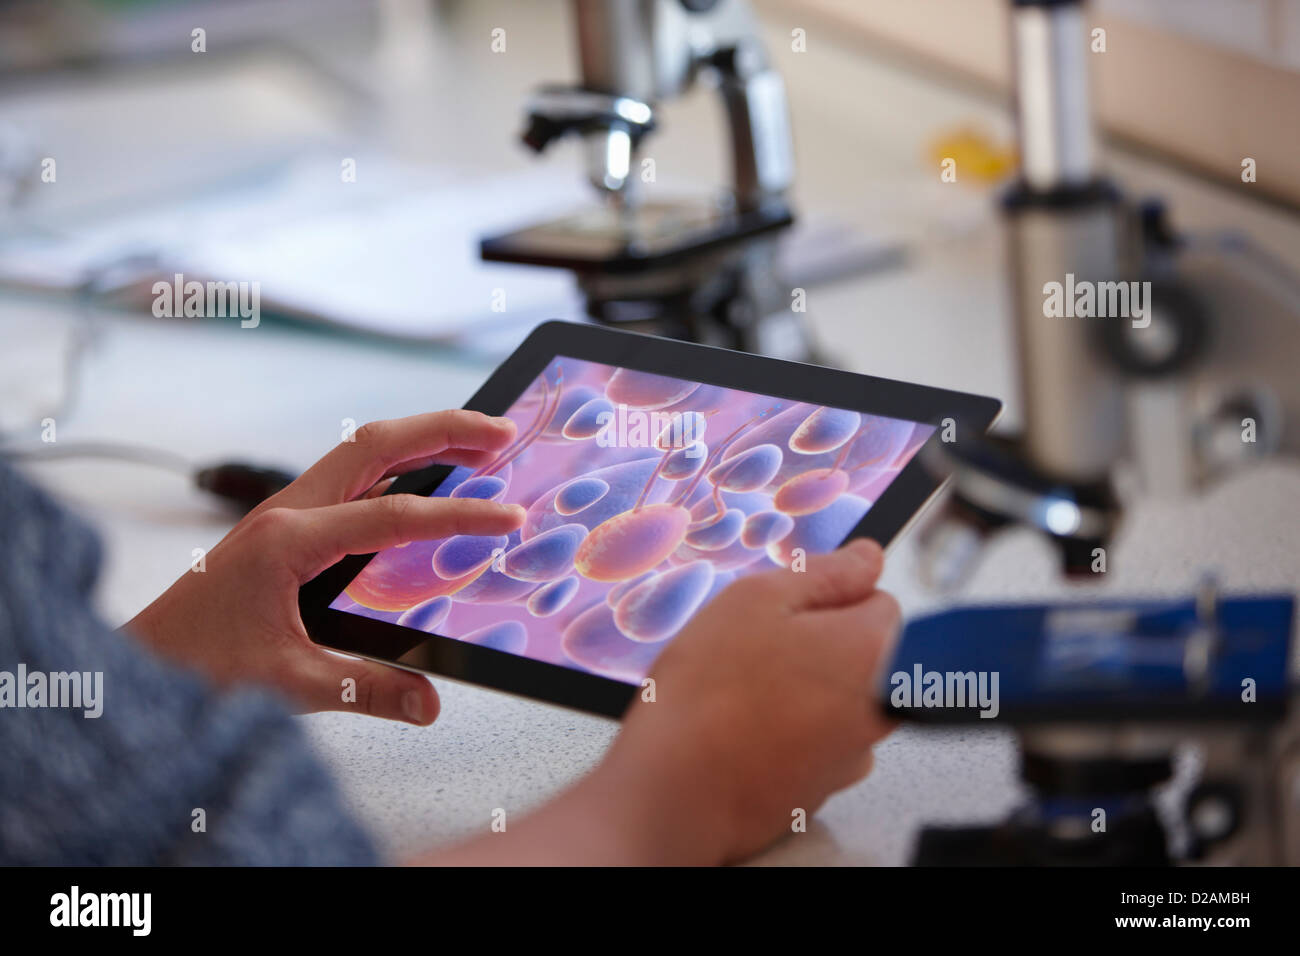 Student using tablet computer in class - Stock Image